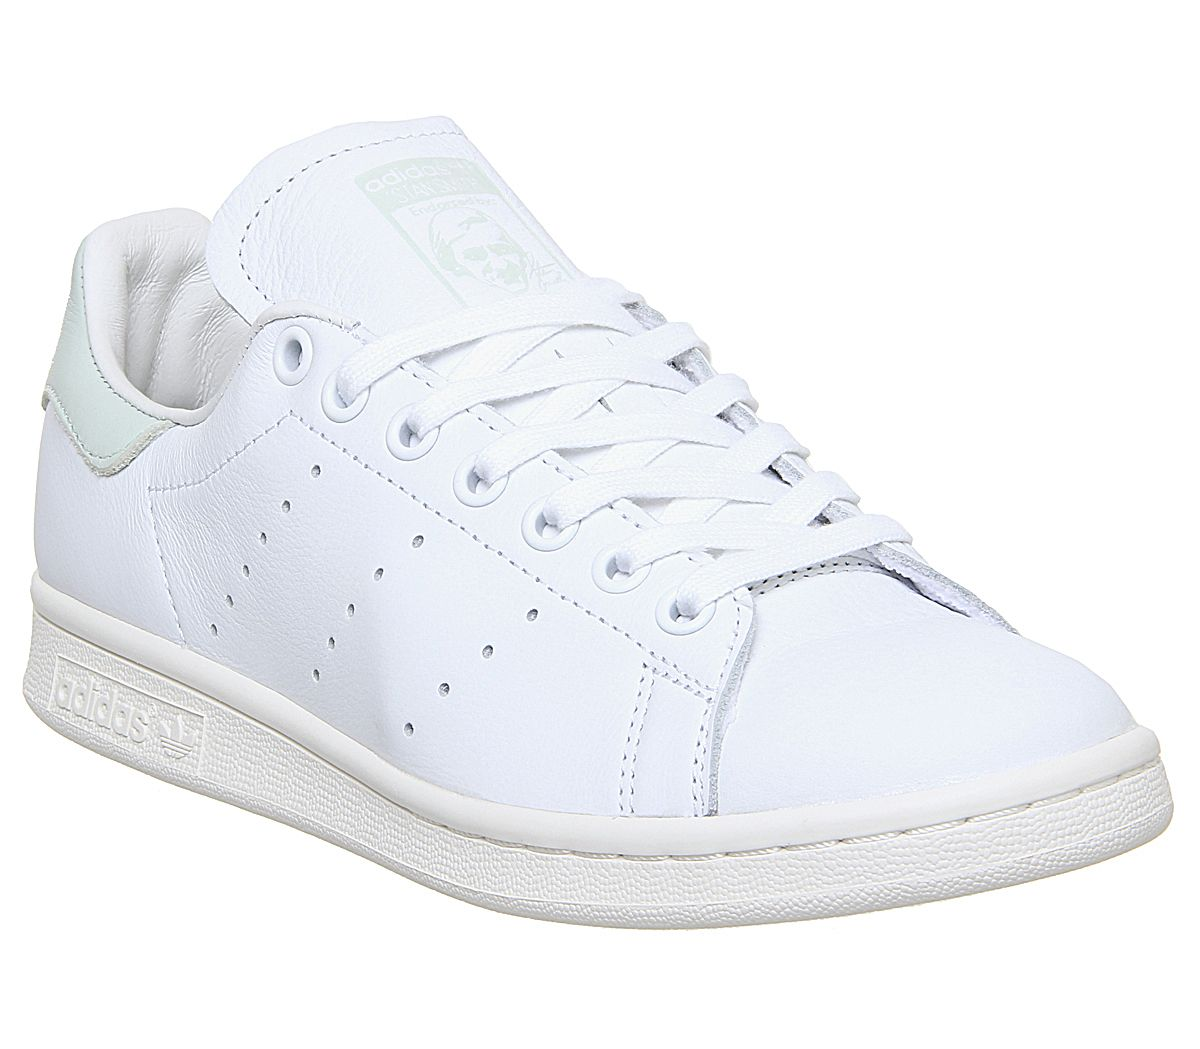 détaillant en ligne e5940 0b387 Details about Women adidas stan smith white trainers white green lin  sneakers- show original title